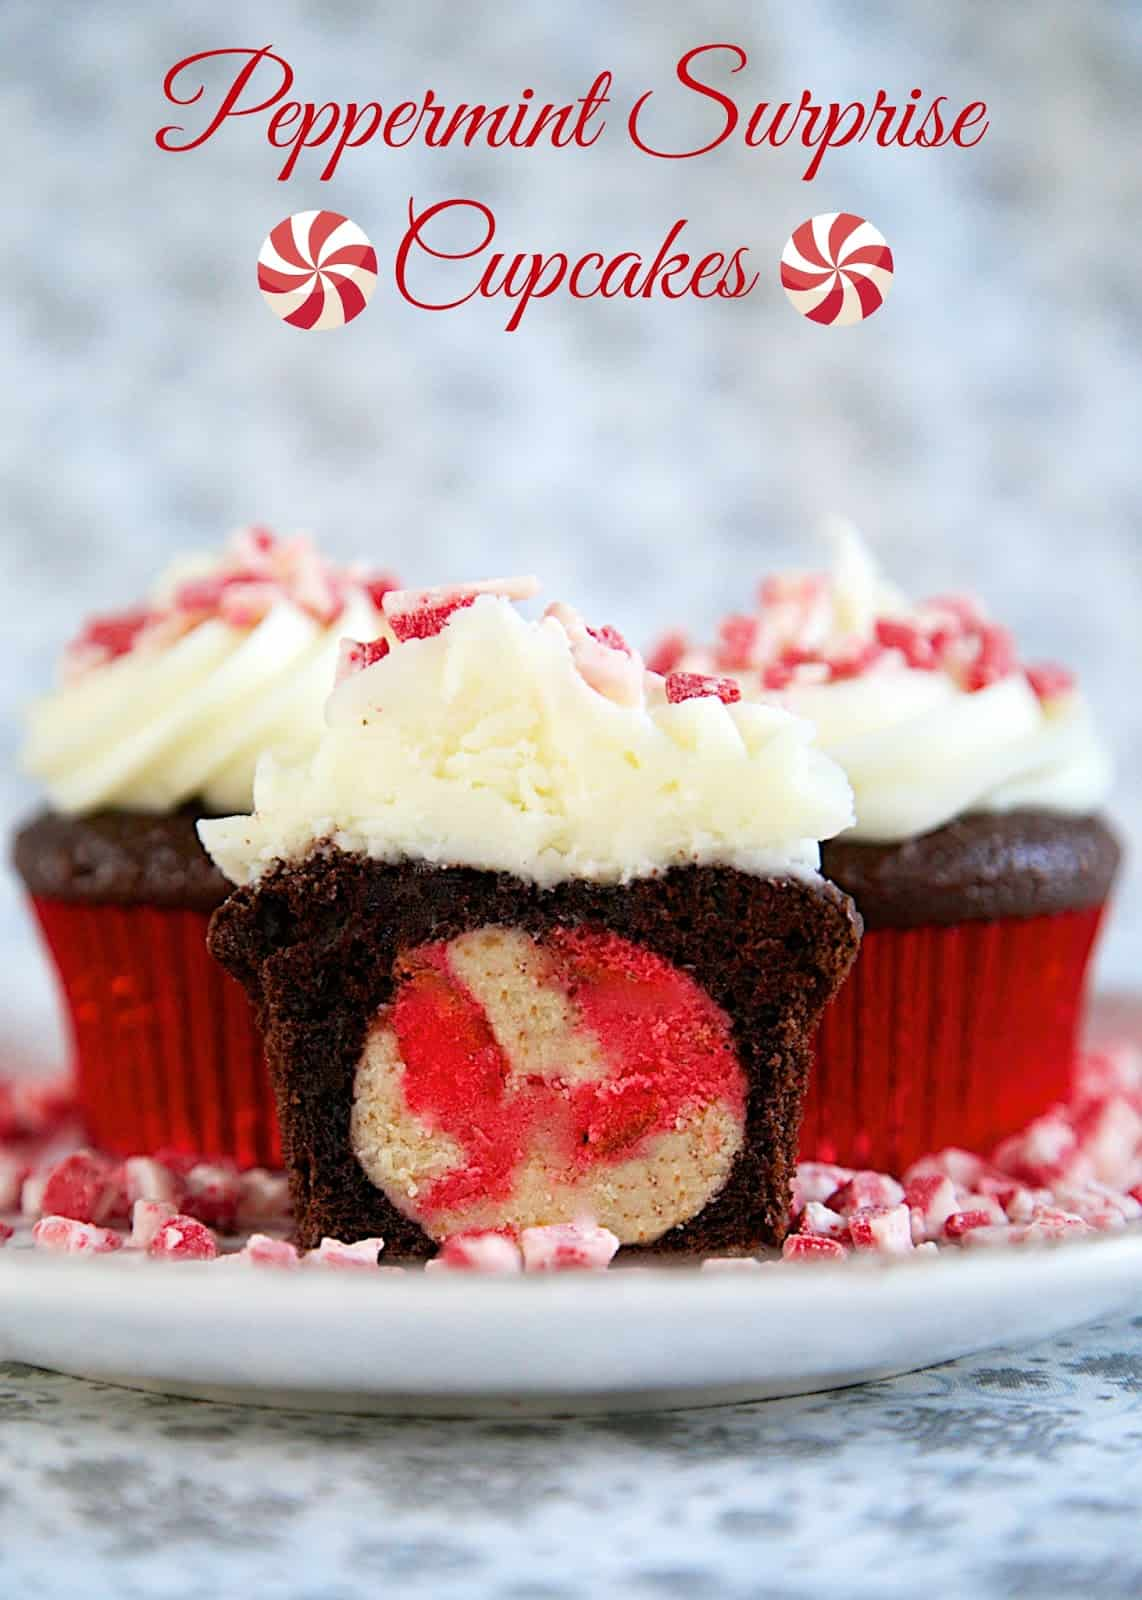 Peppermint Surprise Cupcakes - chocolate cupcakes with peppermint cake balls baked inside. Topped with homemade peppermint buttercream. The best cupcakes I've ever had!